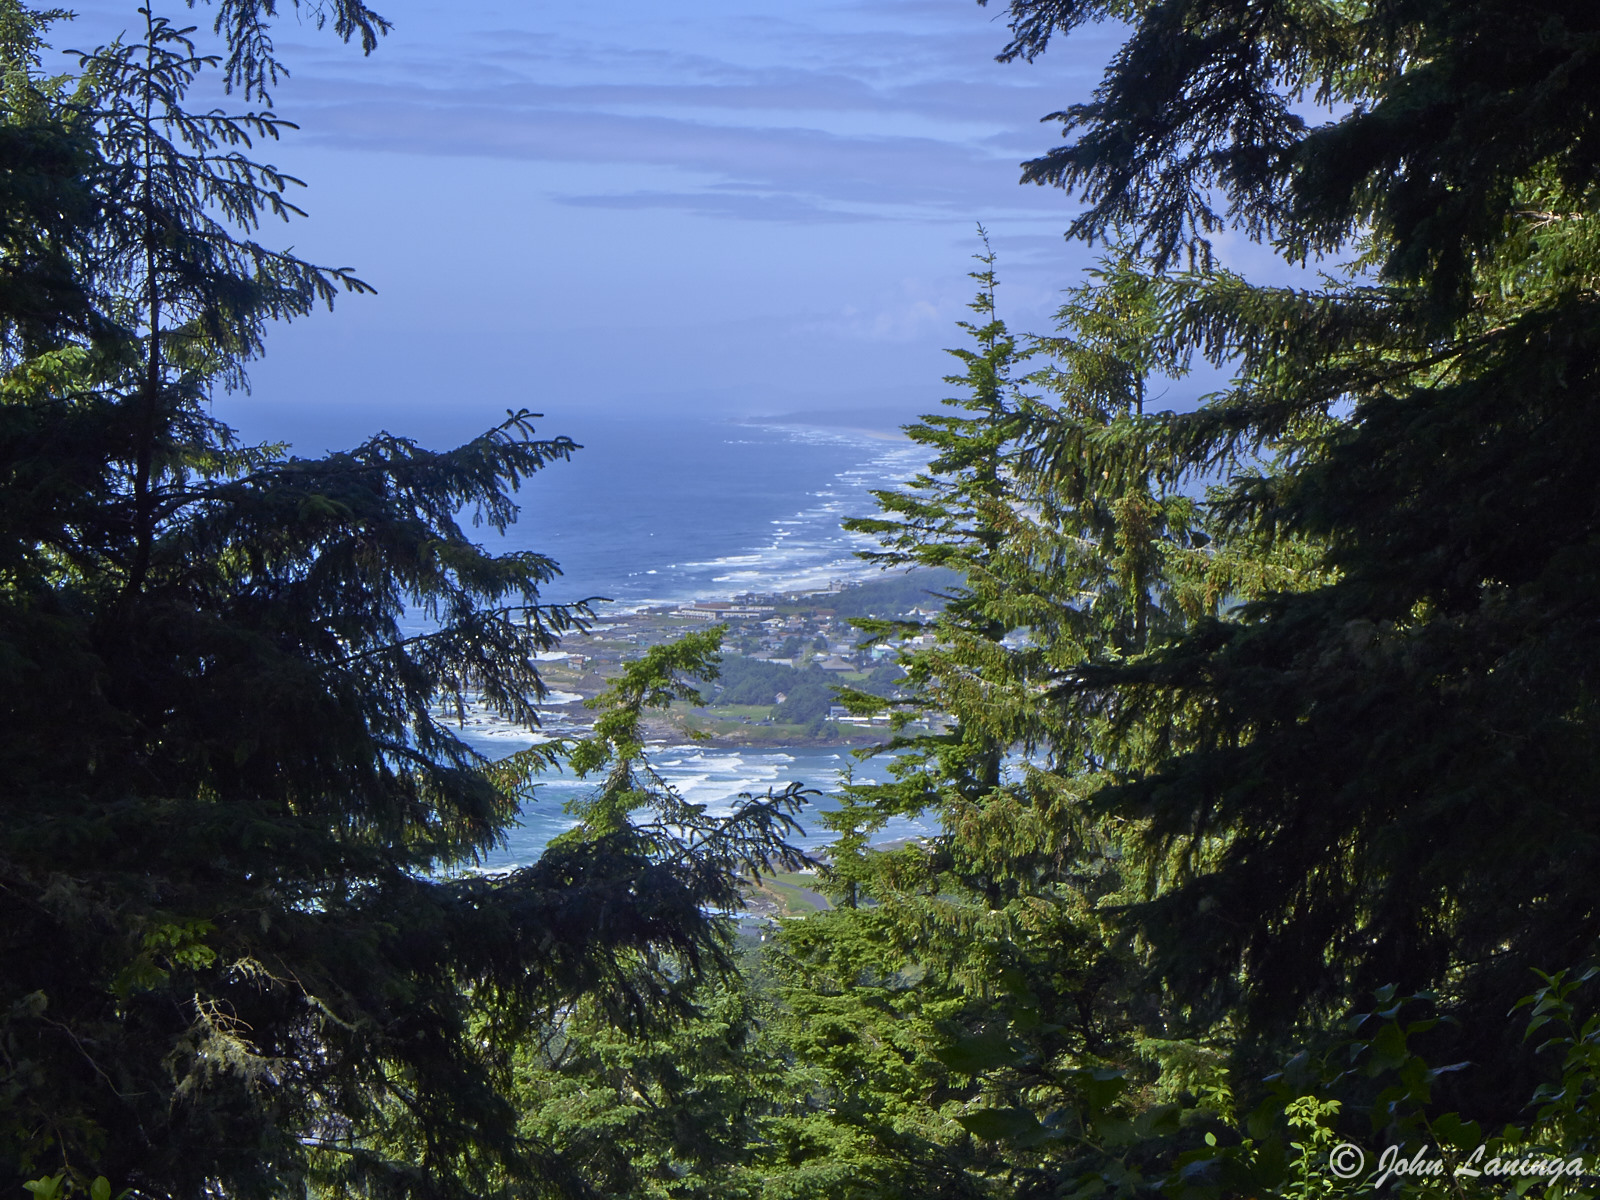 Looking north from Cape Perpetua